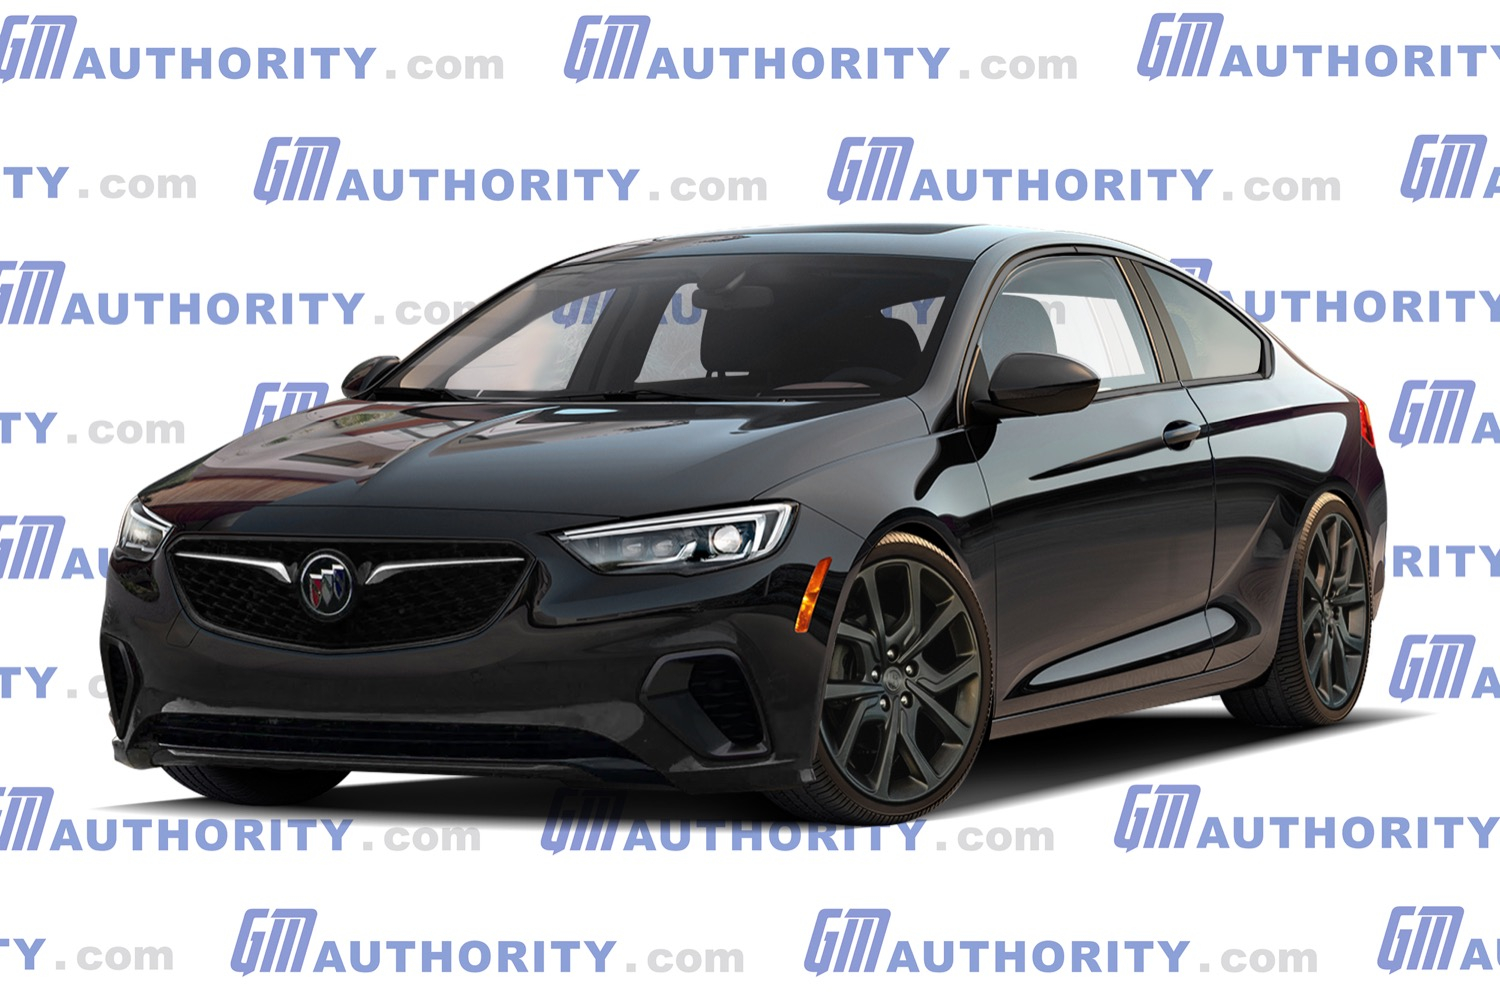 Modern Buick Regal Gnx Rendered | Gm Authority When Will The 2022 Buick Regal Be Available